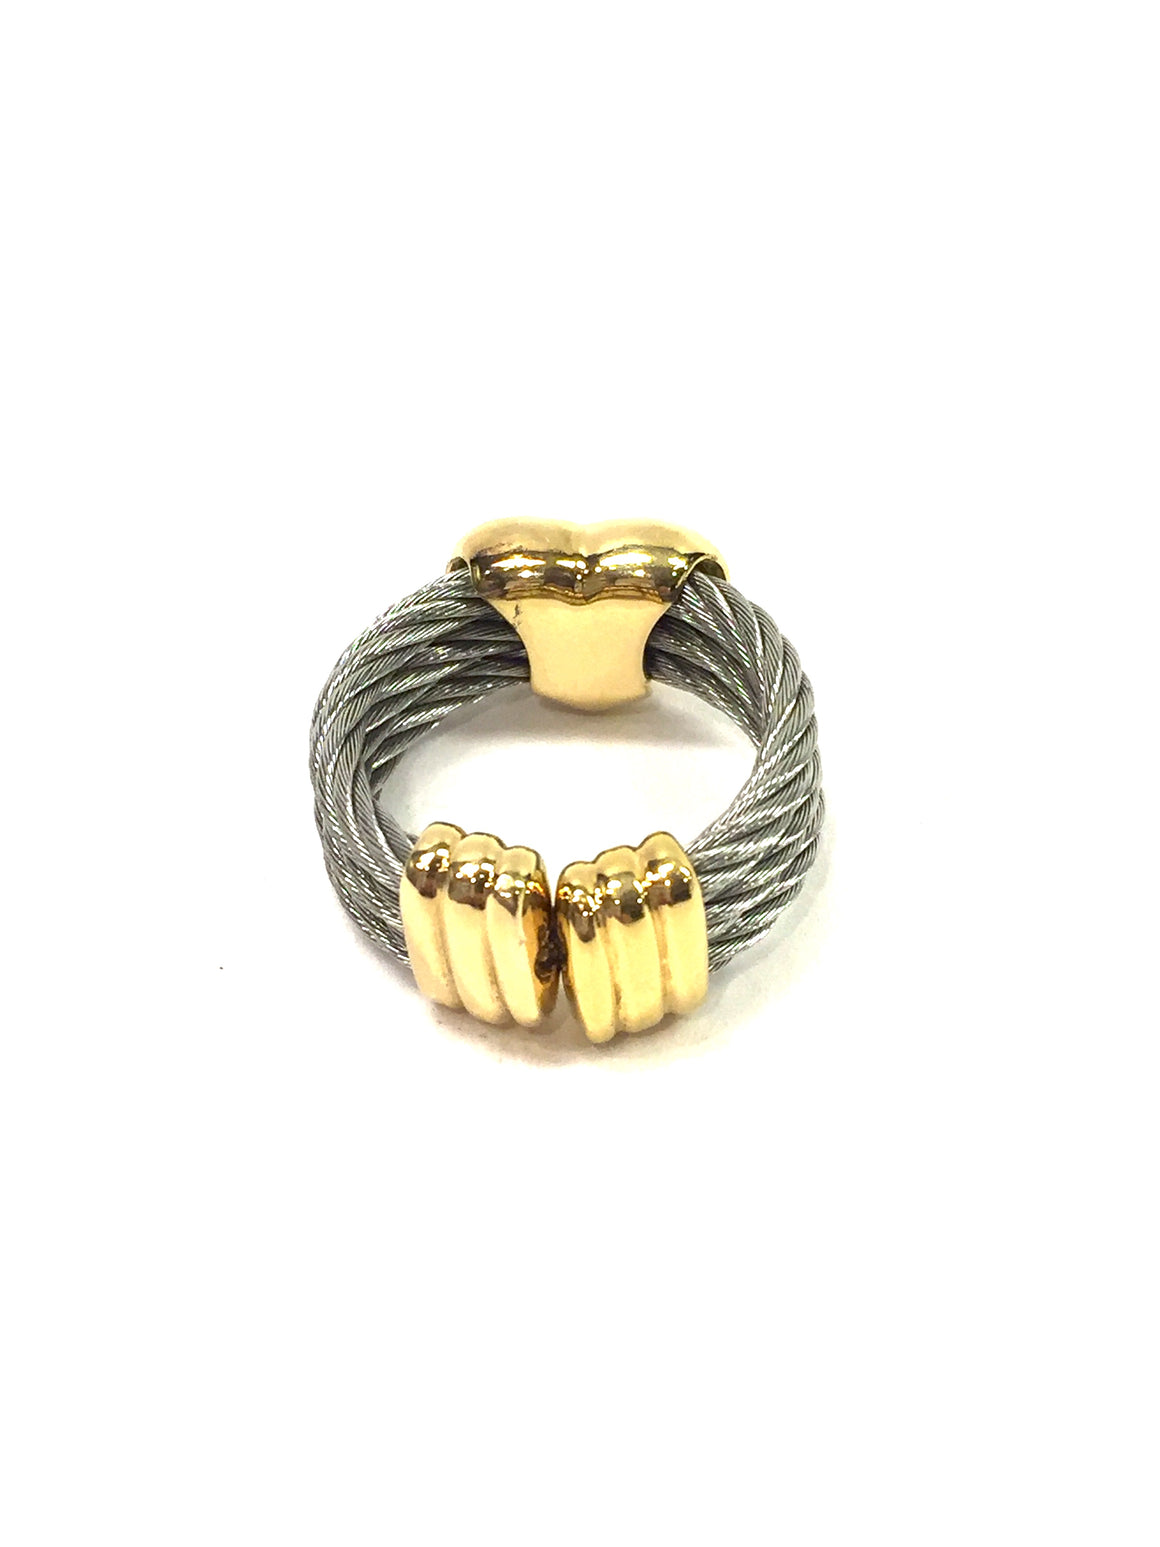 PHILIPPE CHARRIOL Stainless Steel Cable Gilt Metal Heart Ring Size: One Size